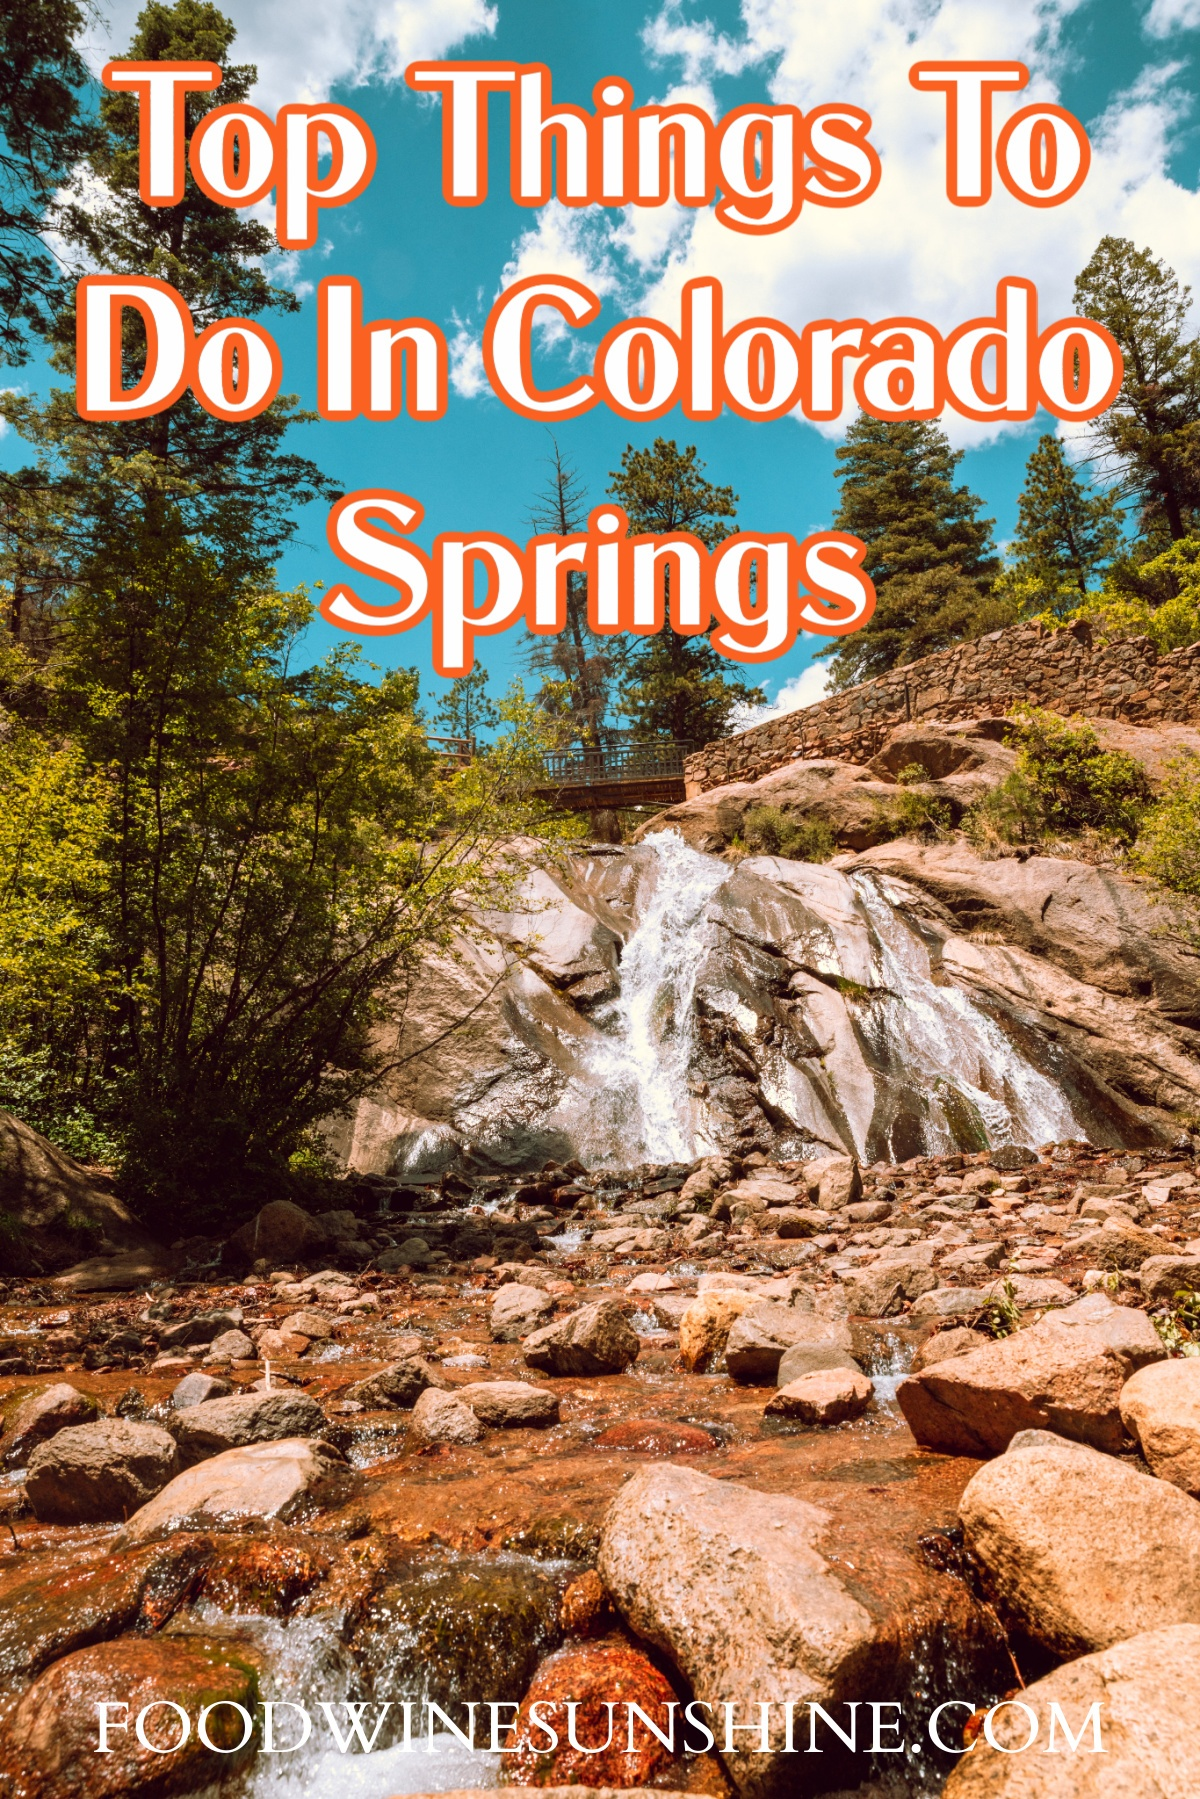 Top Things To Do In Colorado Springs